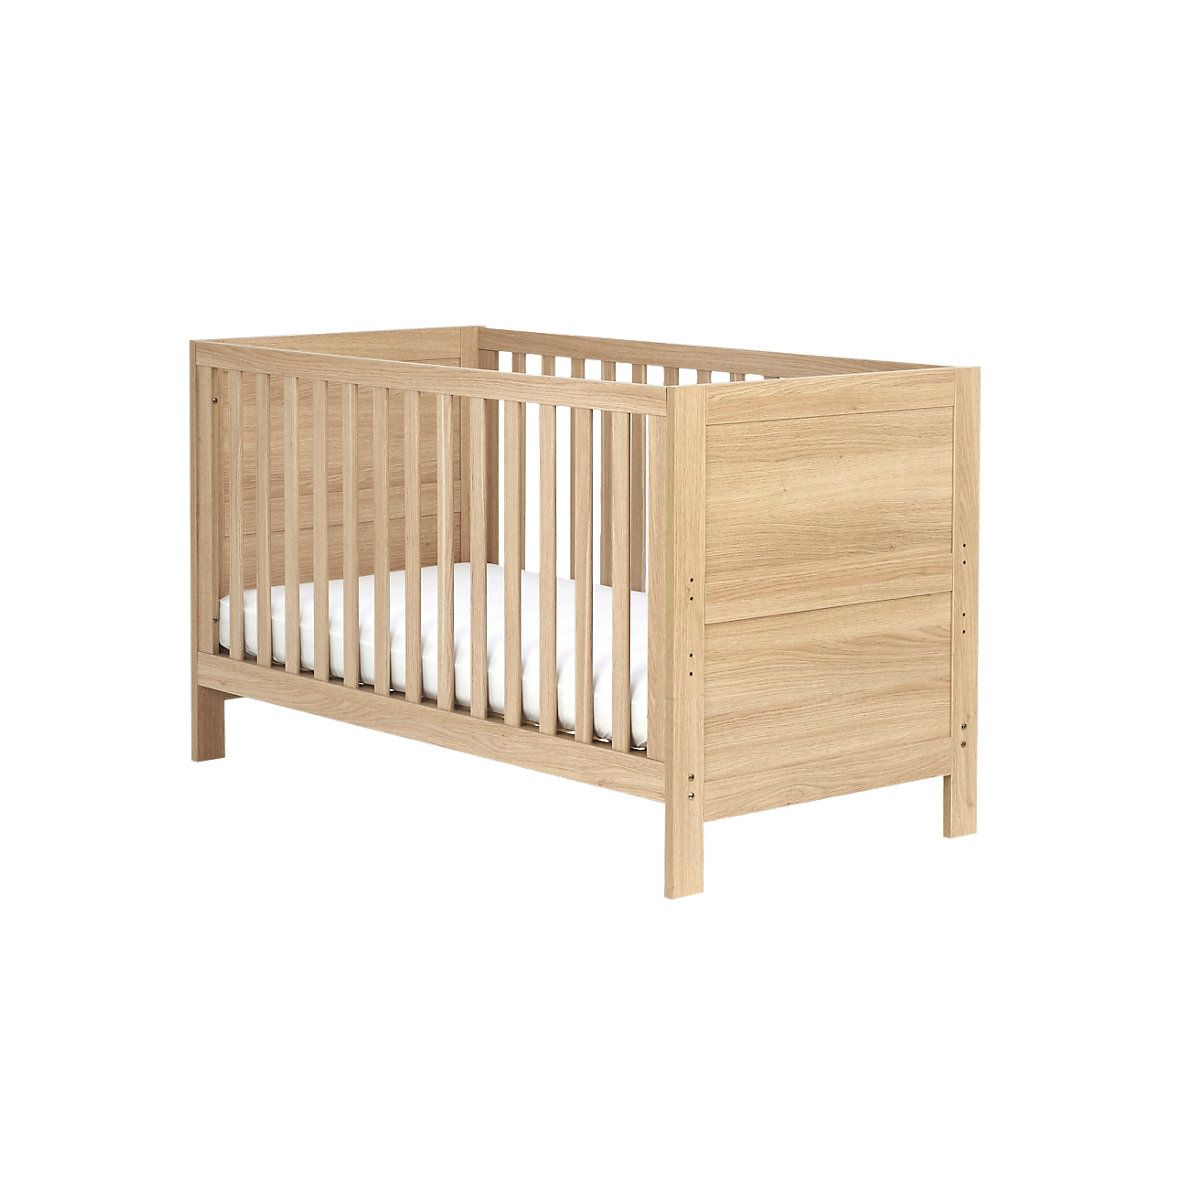 Mothercare Knightsbridge Cot Bed With Free Delivery